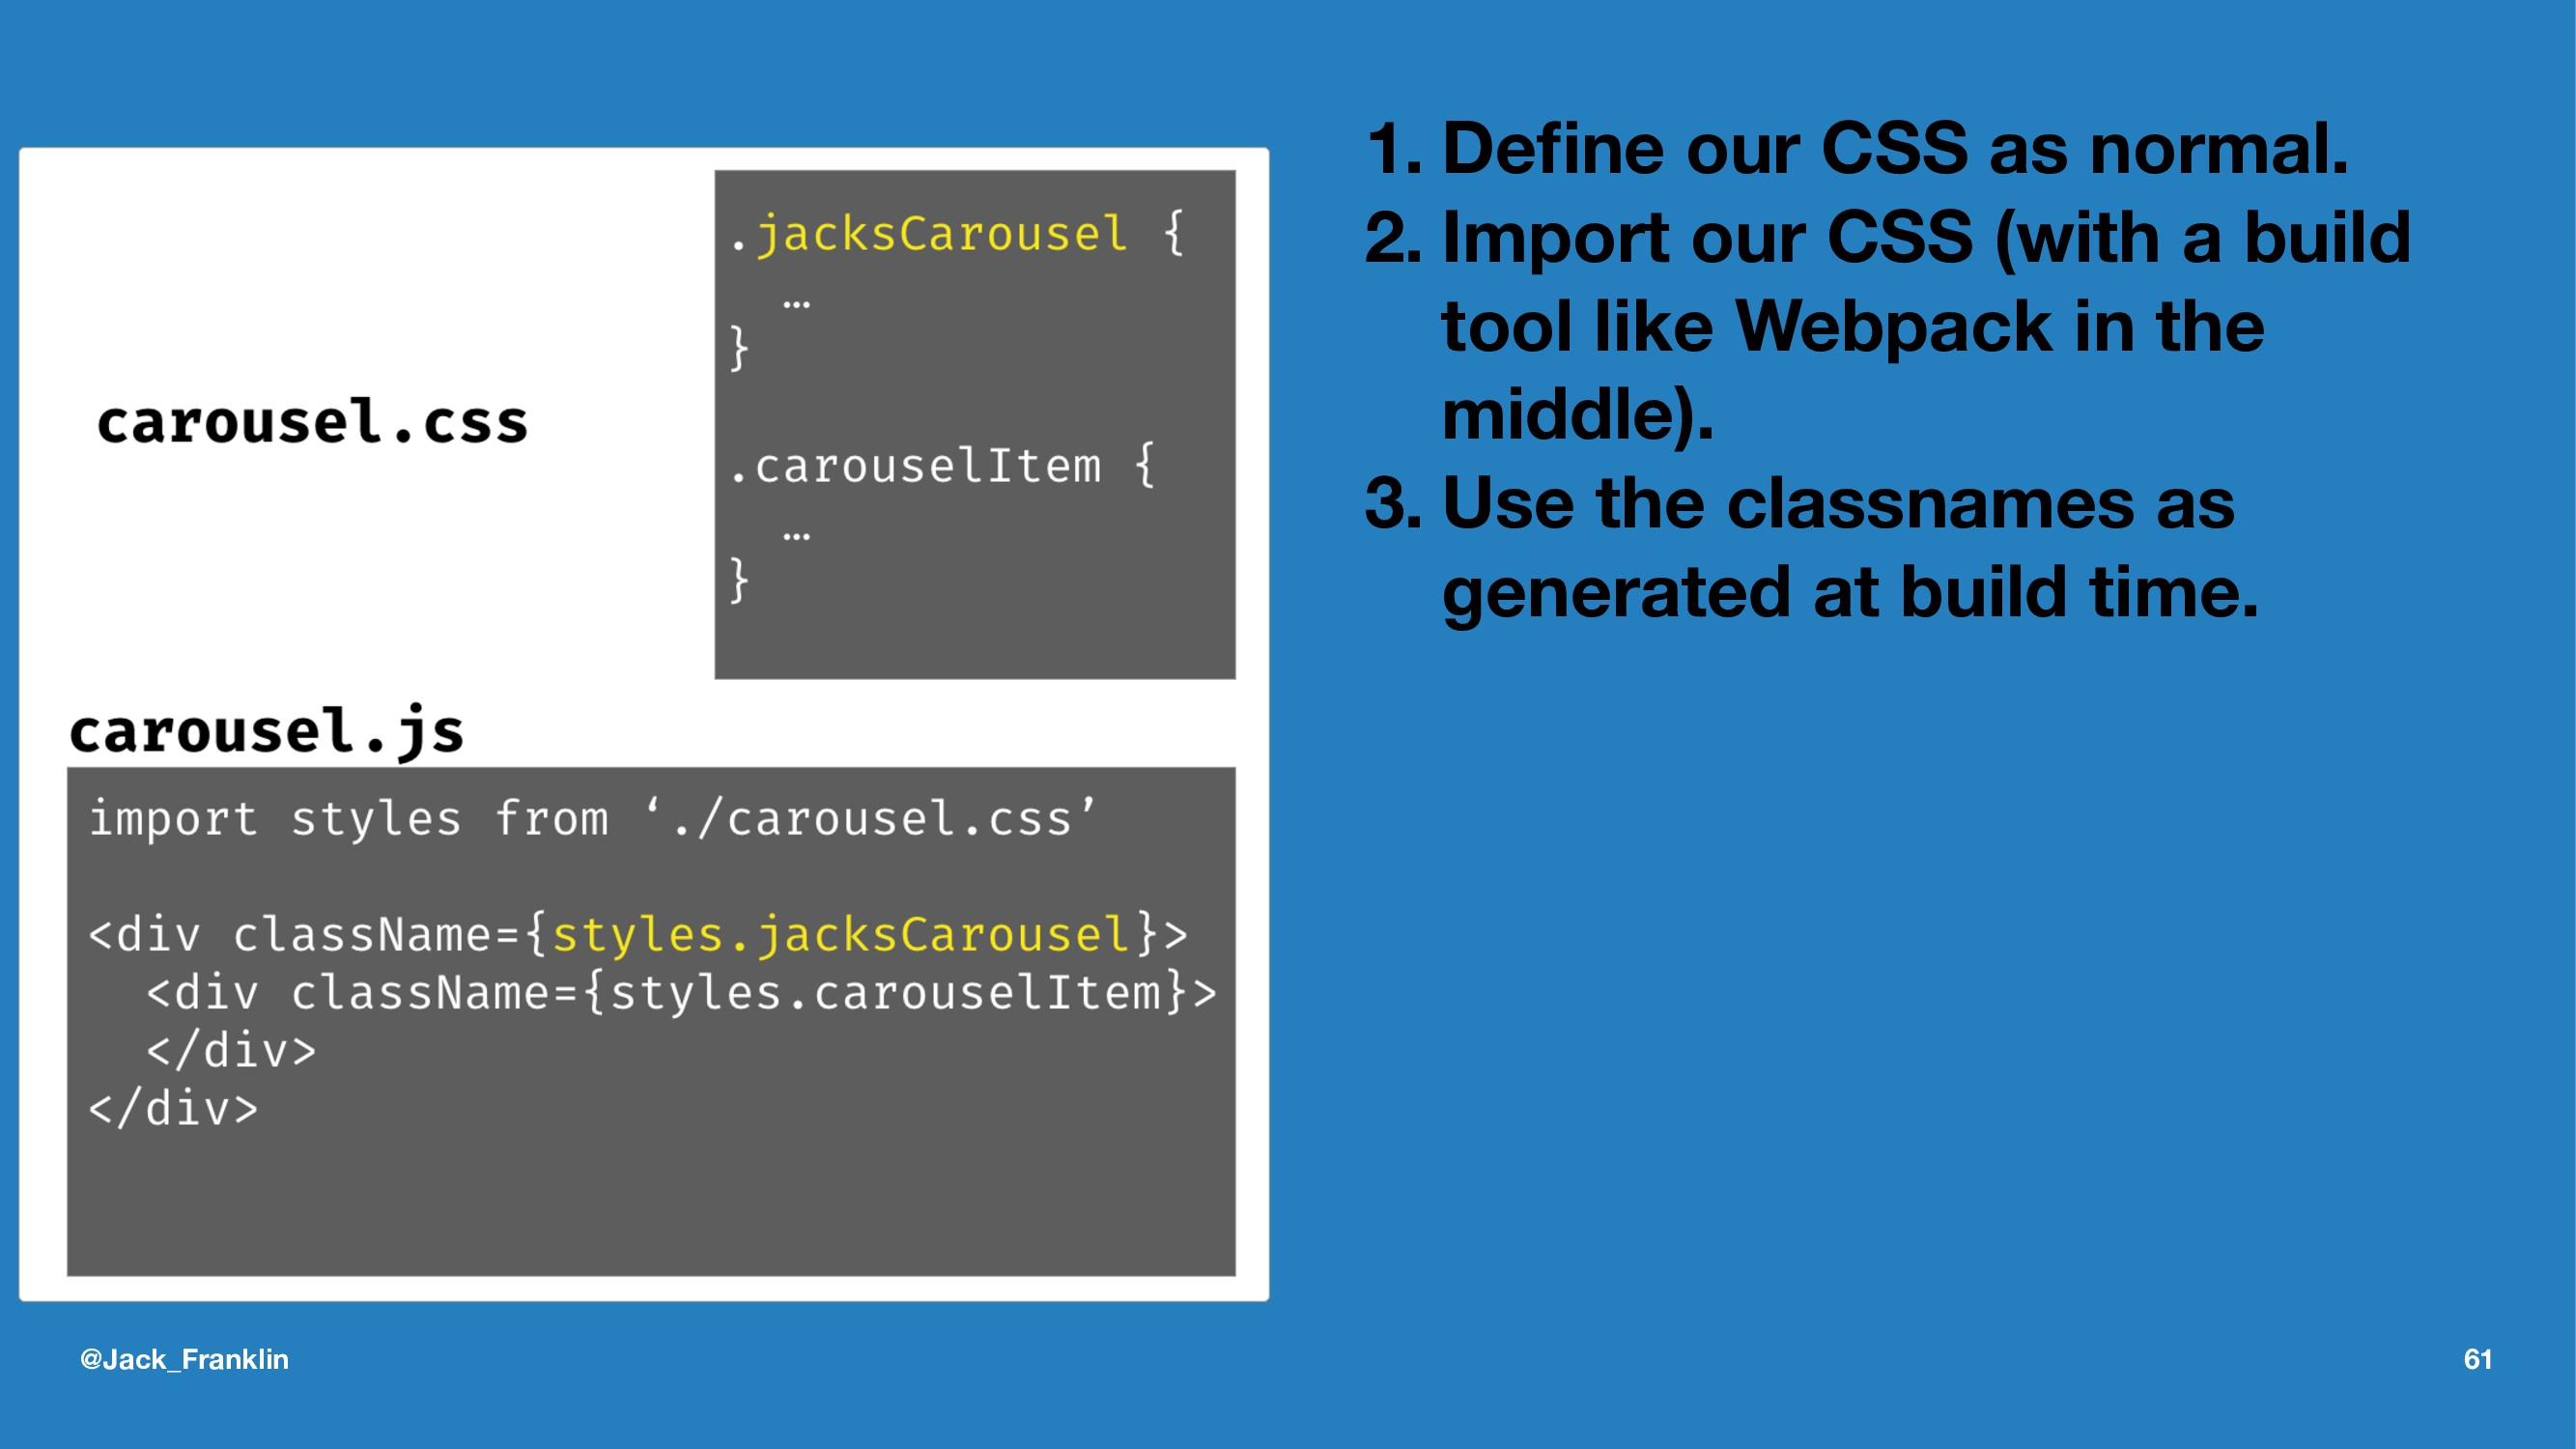 1. Define our CSS as normal. 2. Import our CSS (...